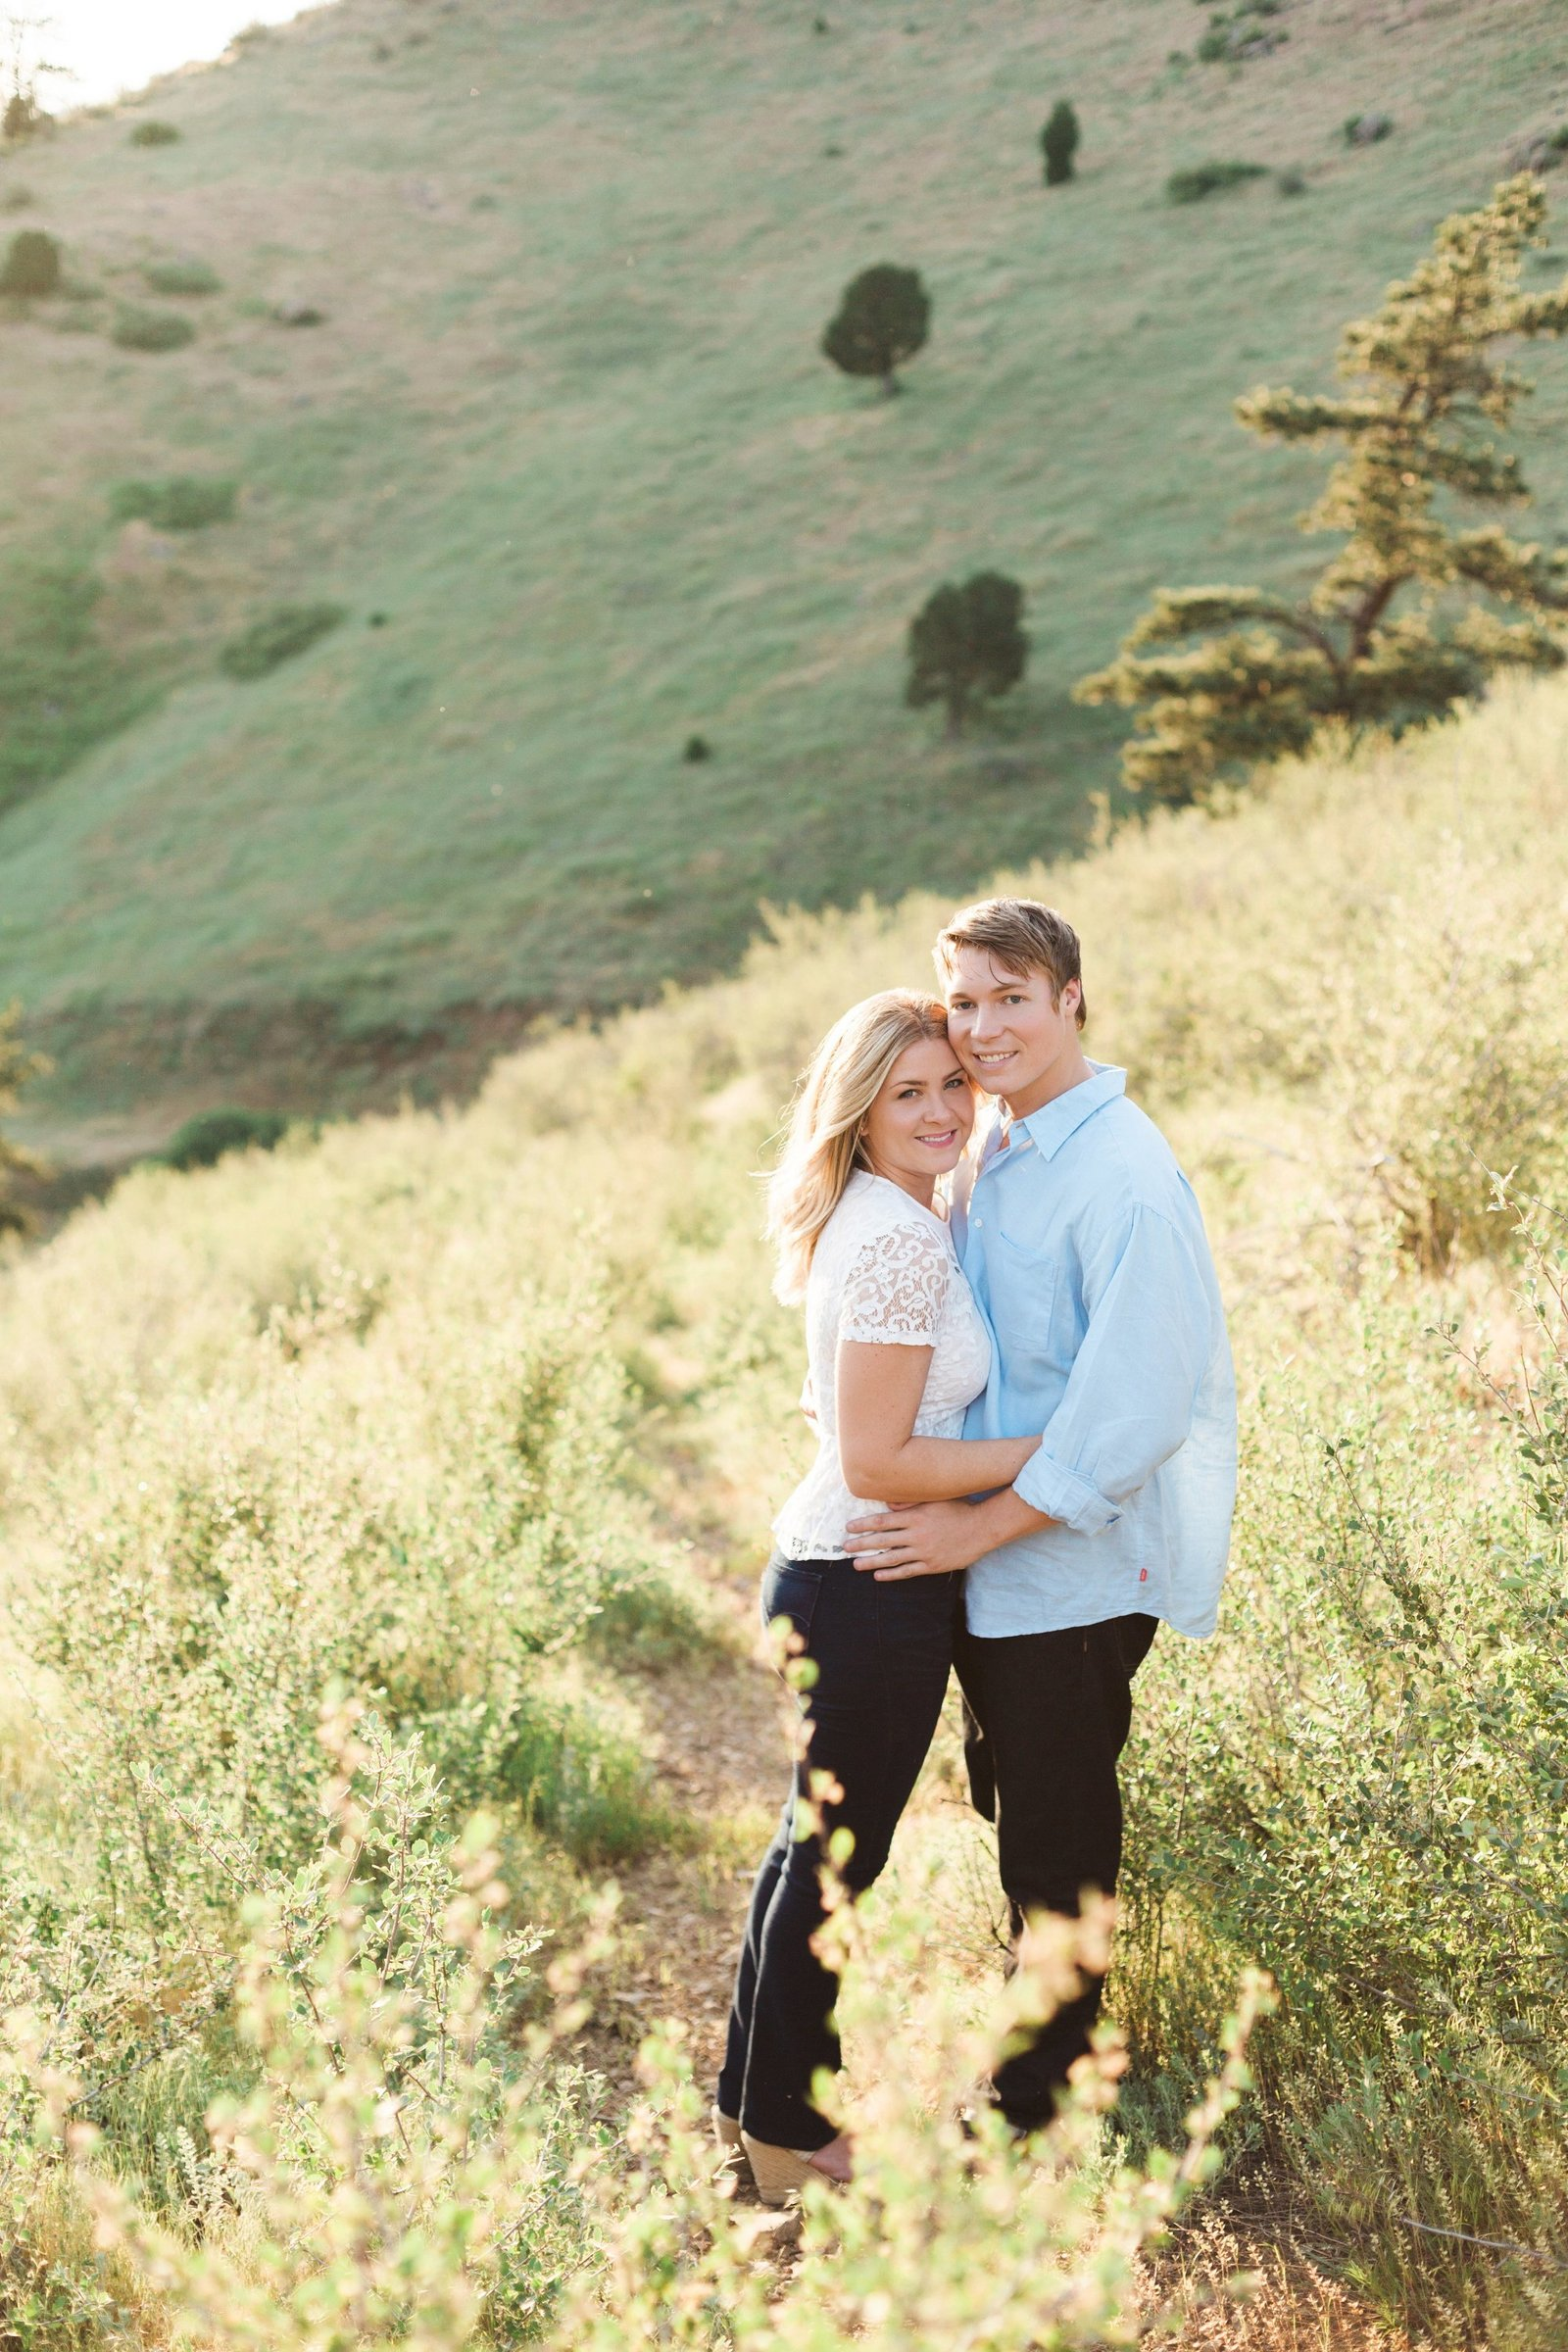 Engagements -Denver Lookout Mountain Engagement Session Golden Colorado Wedding Photographer Overlook City Lights Nature Outdoors Valley Light Couple (13)